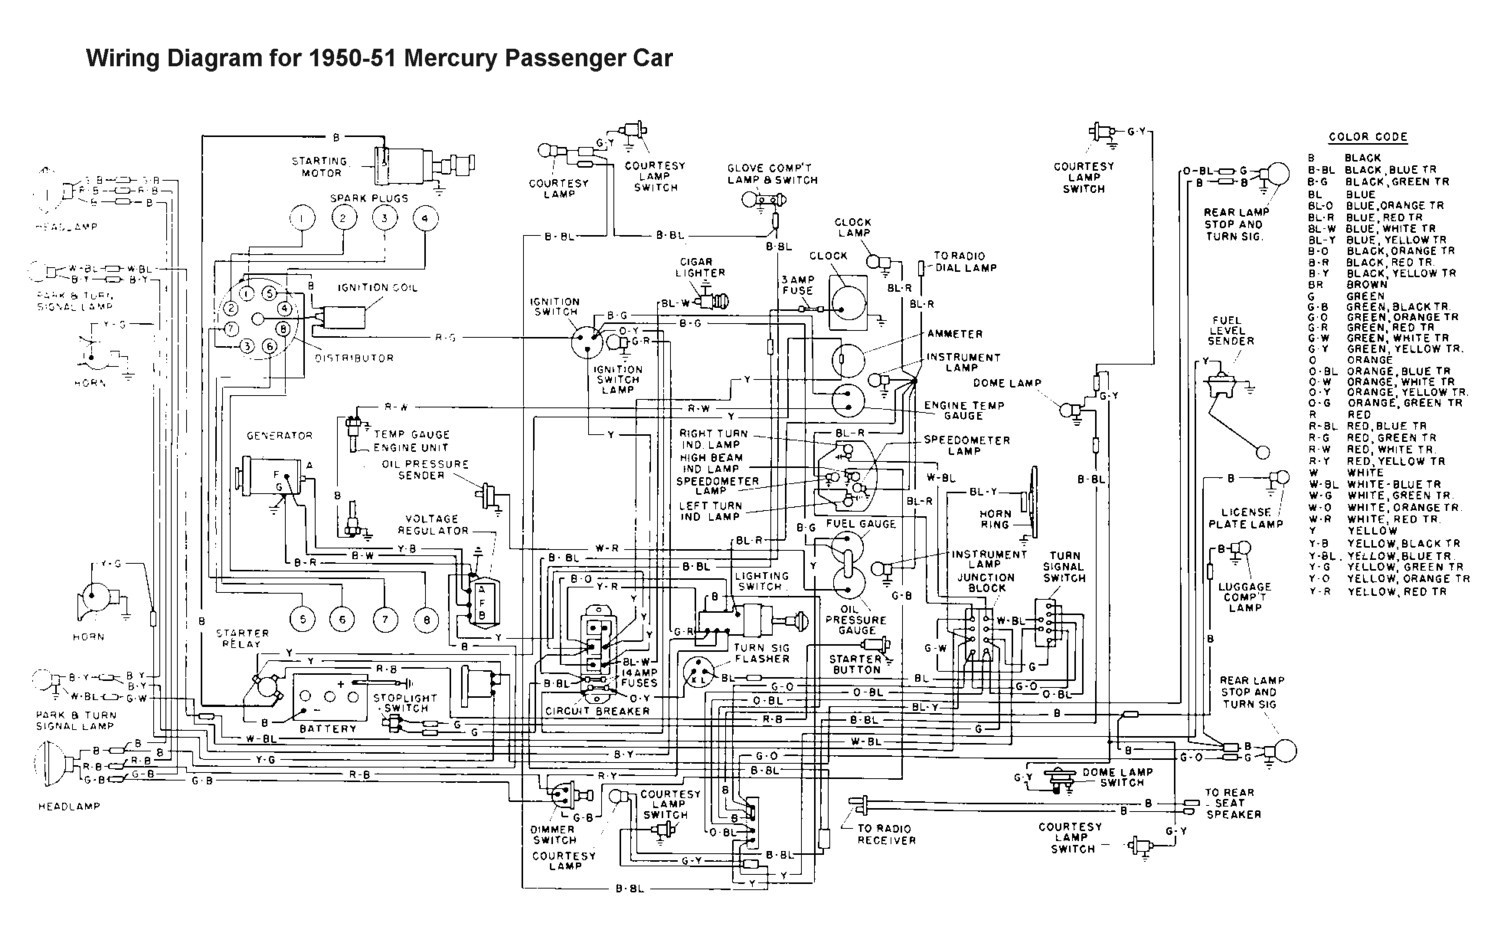 Tci 700r4 Wiring Schematic also P 0900c15280087a8a likewise Schematics b in addition 94 Chevy Truck Transmission Wiring Diagram besides Schematics b. on 1985 chevy truck wiring diagram